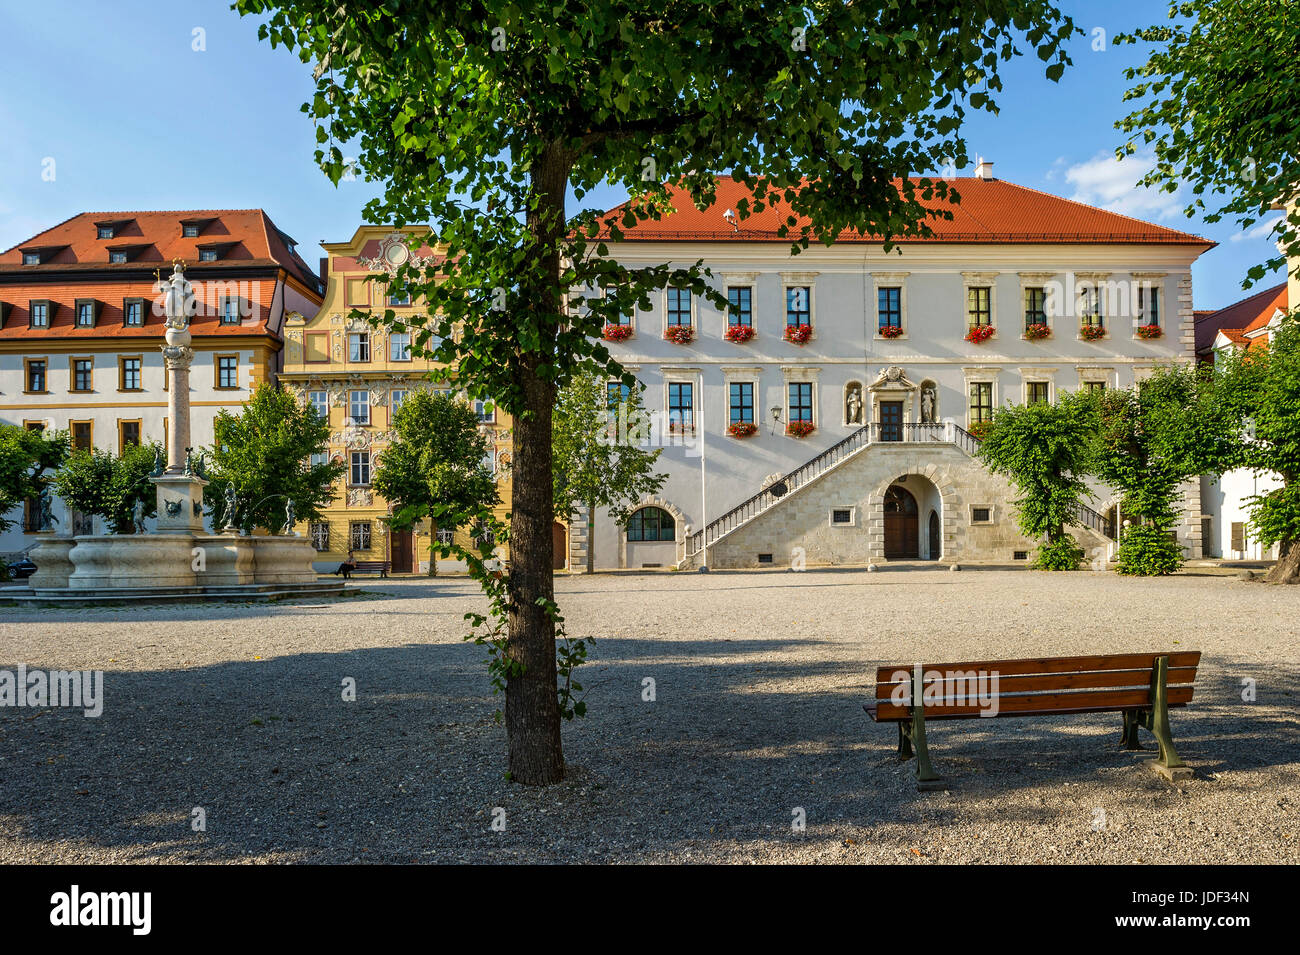 Zieglerhaus, Marien fountain, aristocratic town house Thurn- and Taxishaus, Town Hall, Karls square, Neuburg on - Stock Image